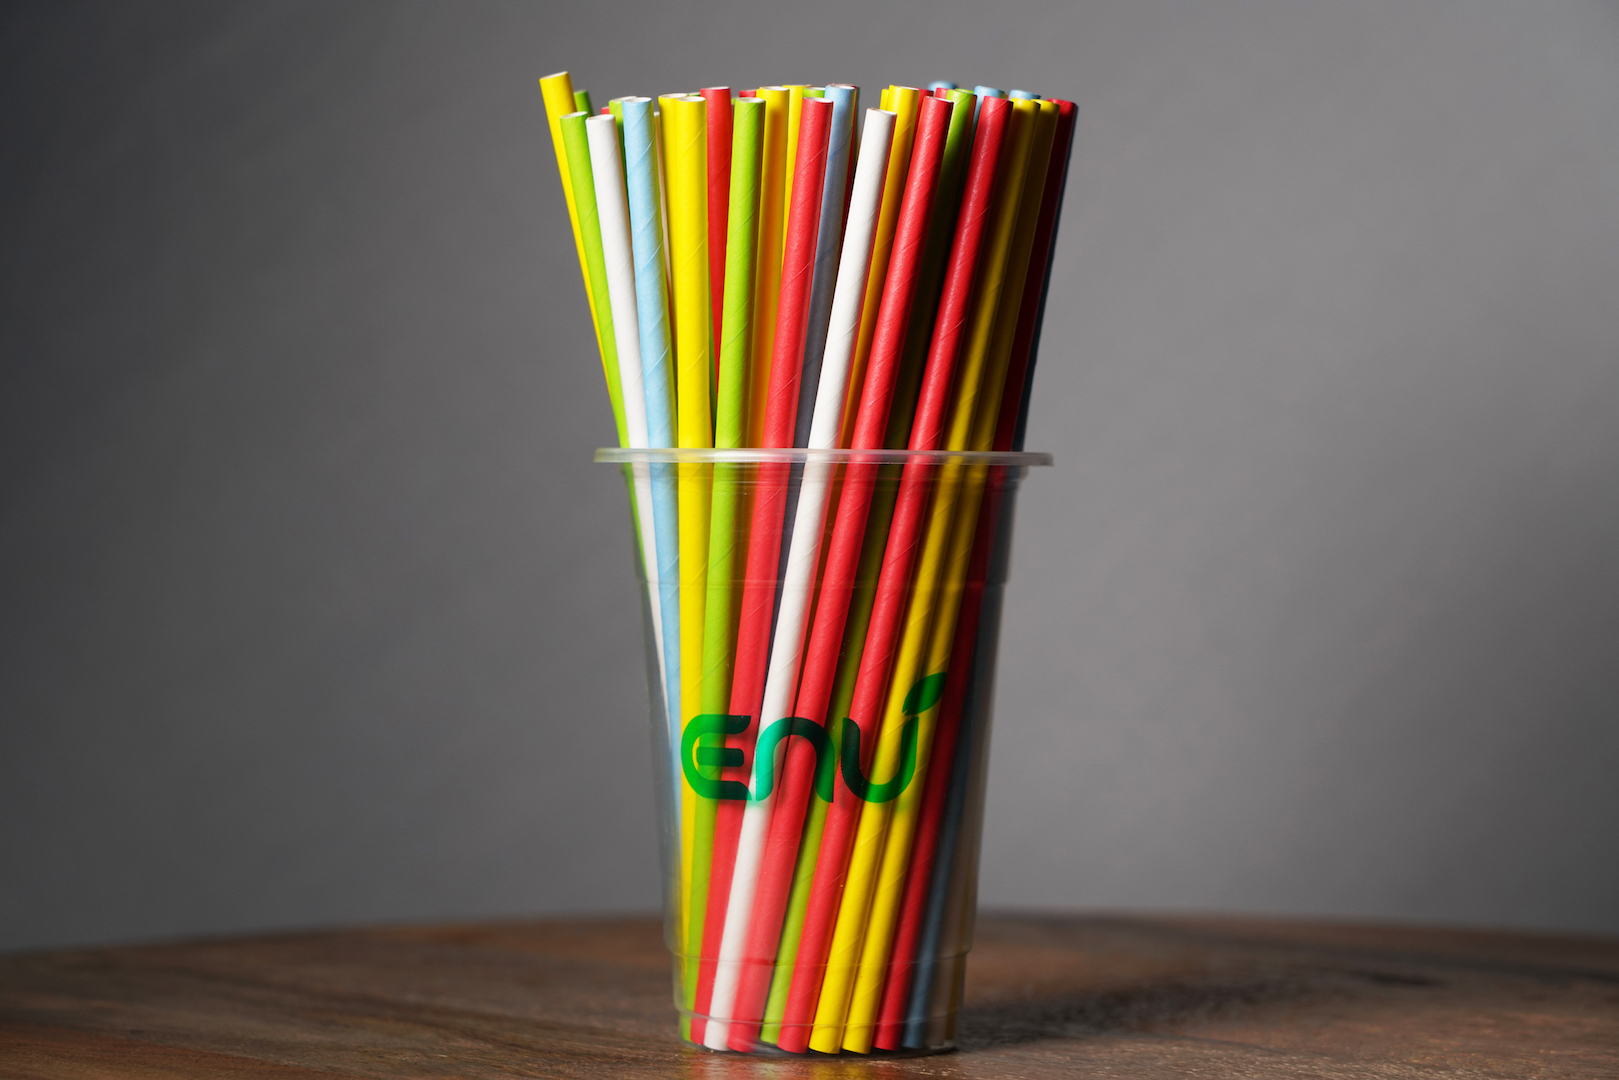 Biodegradable Compostable Bamboo Straws,OrganicPaper Drinking Straw, Colorful Modern Solid Colors, 250 Unwrapped Fun Pack, Reuse Recycle, Cocktail Tall Large Smoothies, Kids FriendlyEco Straws